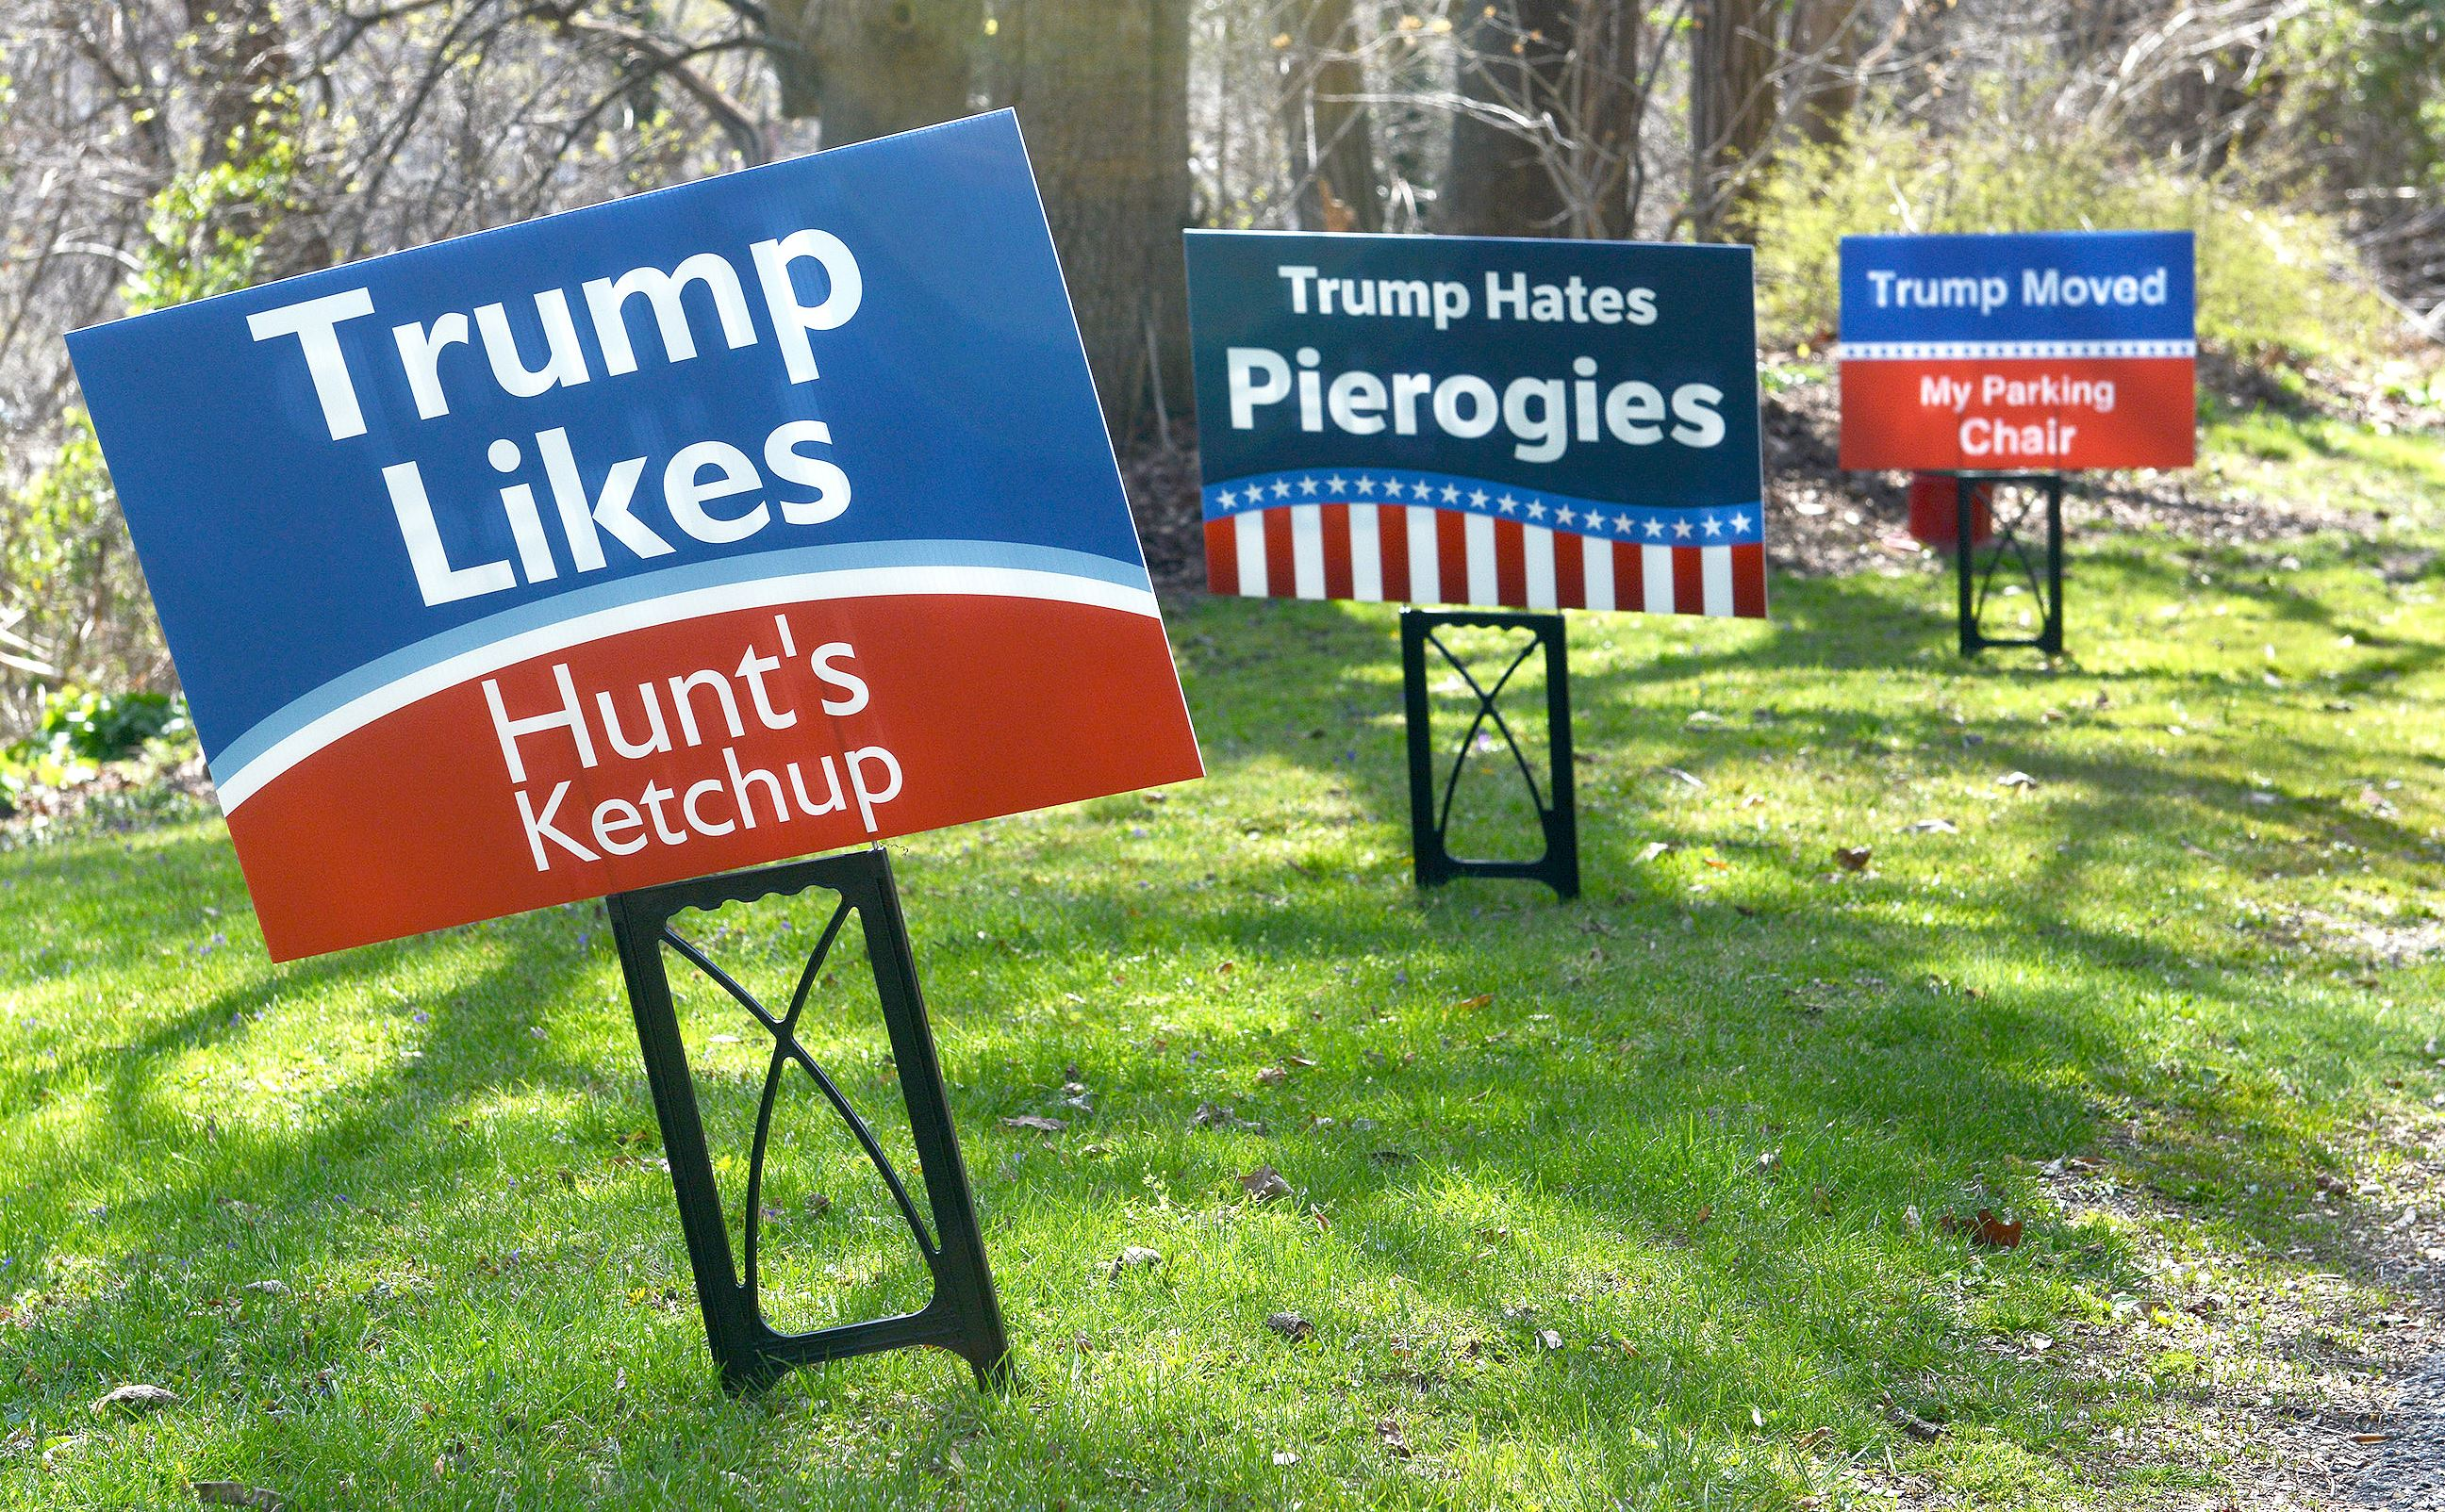 A Country Divided by Yard Signs